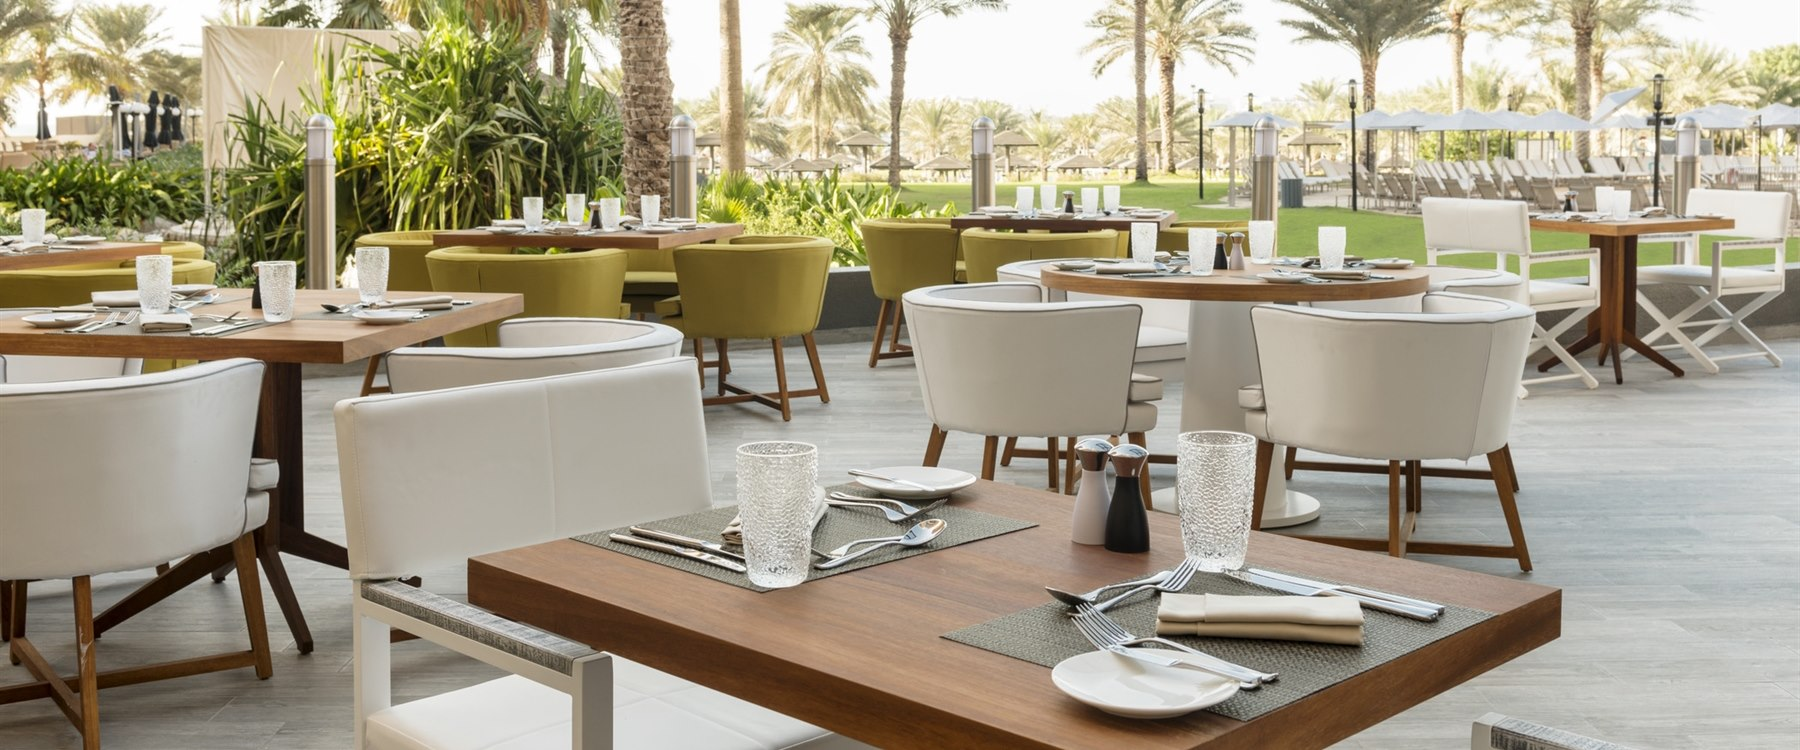 Terrace with Garden View at Le Royal Meridien Beach Resort & Spa